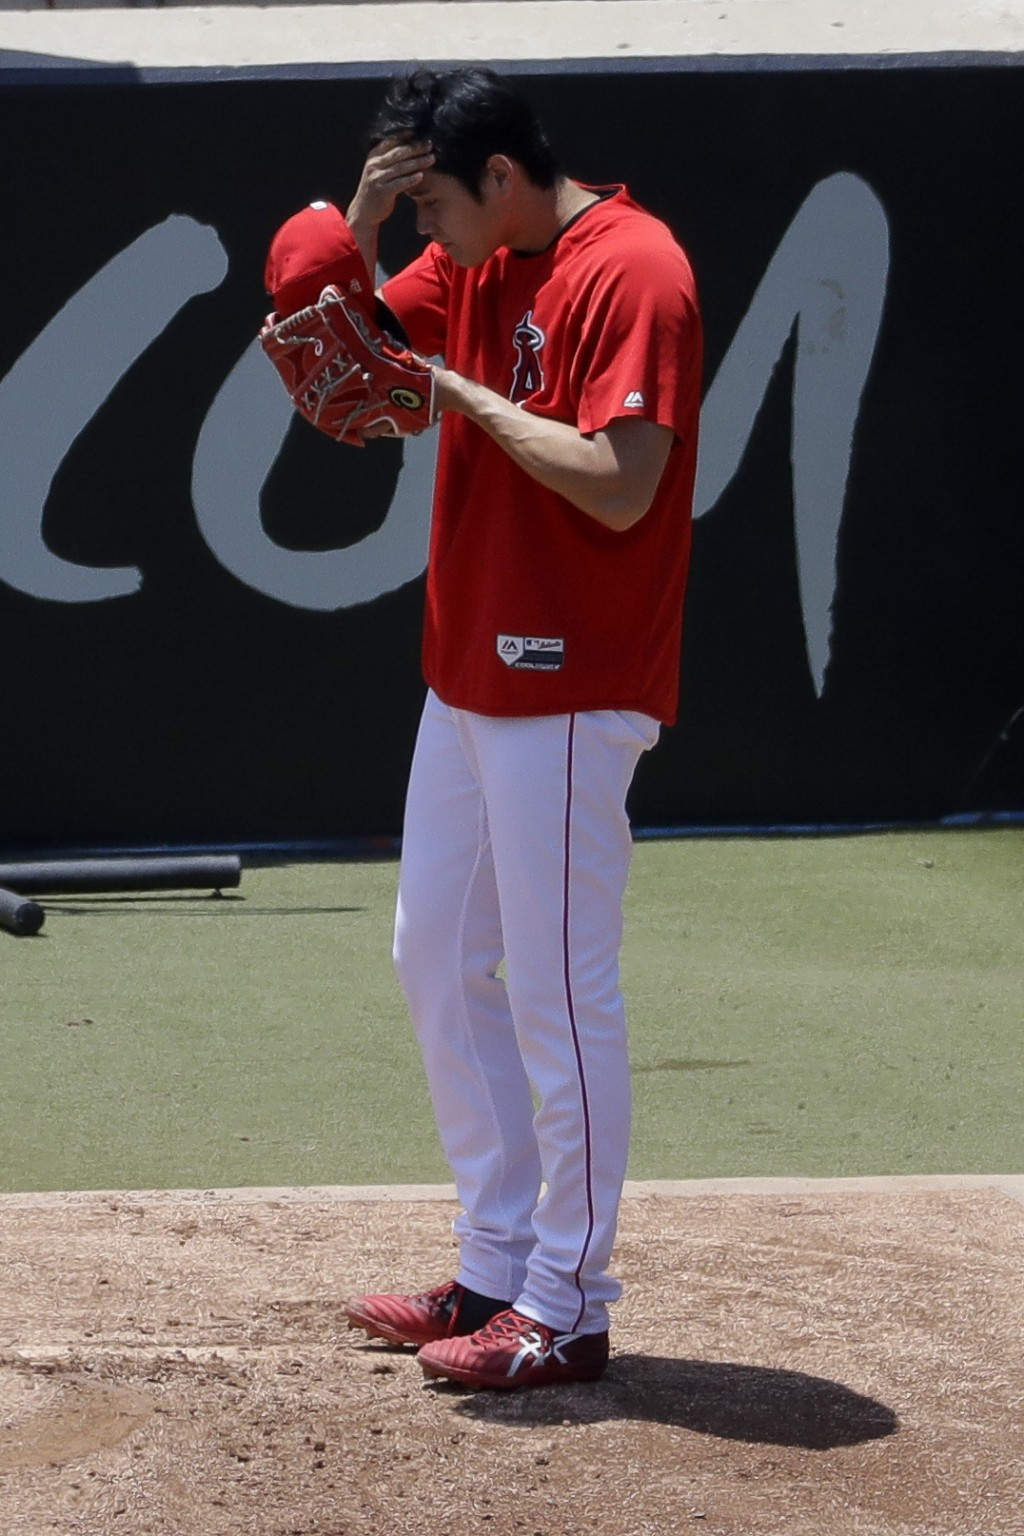 Los Angeles Angels' Shohei Ohtani wipes his face after throwing in the bullpen before a baseball game against the Cincinnati Reds in Anaheim, Calif., ...